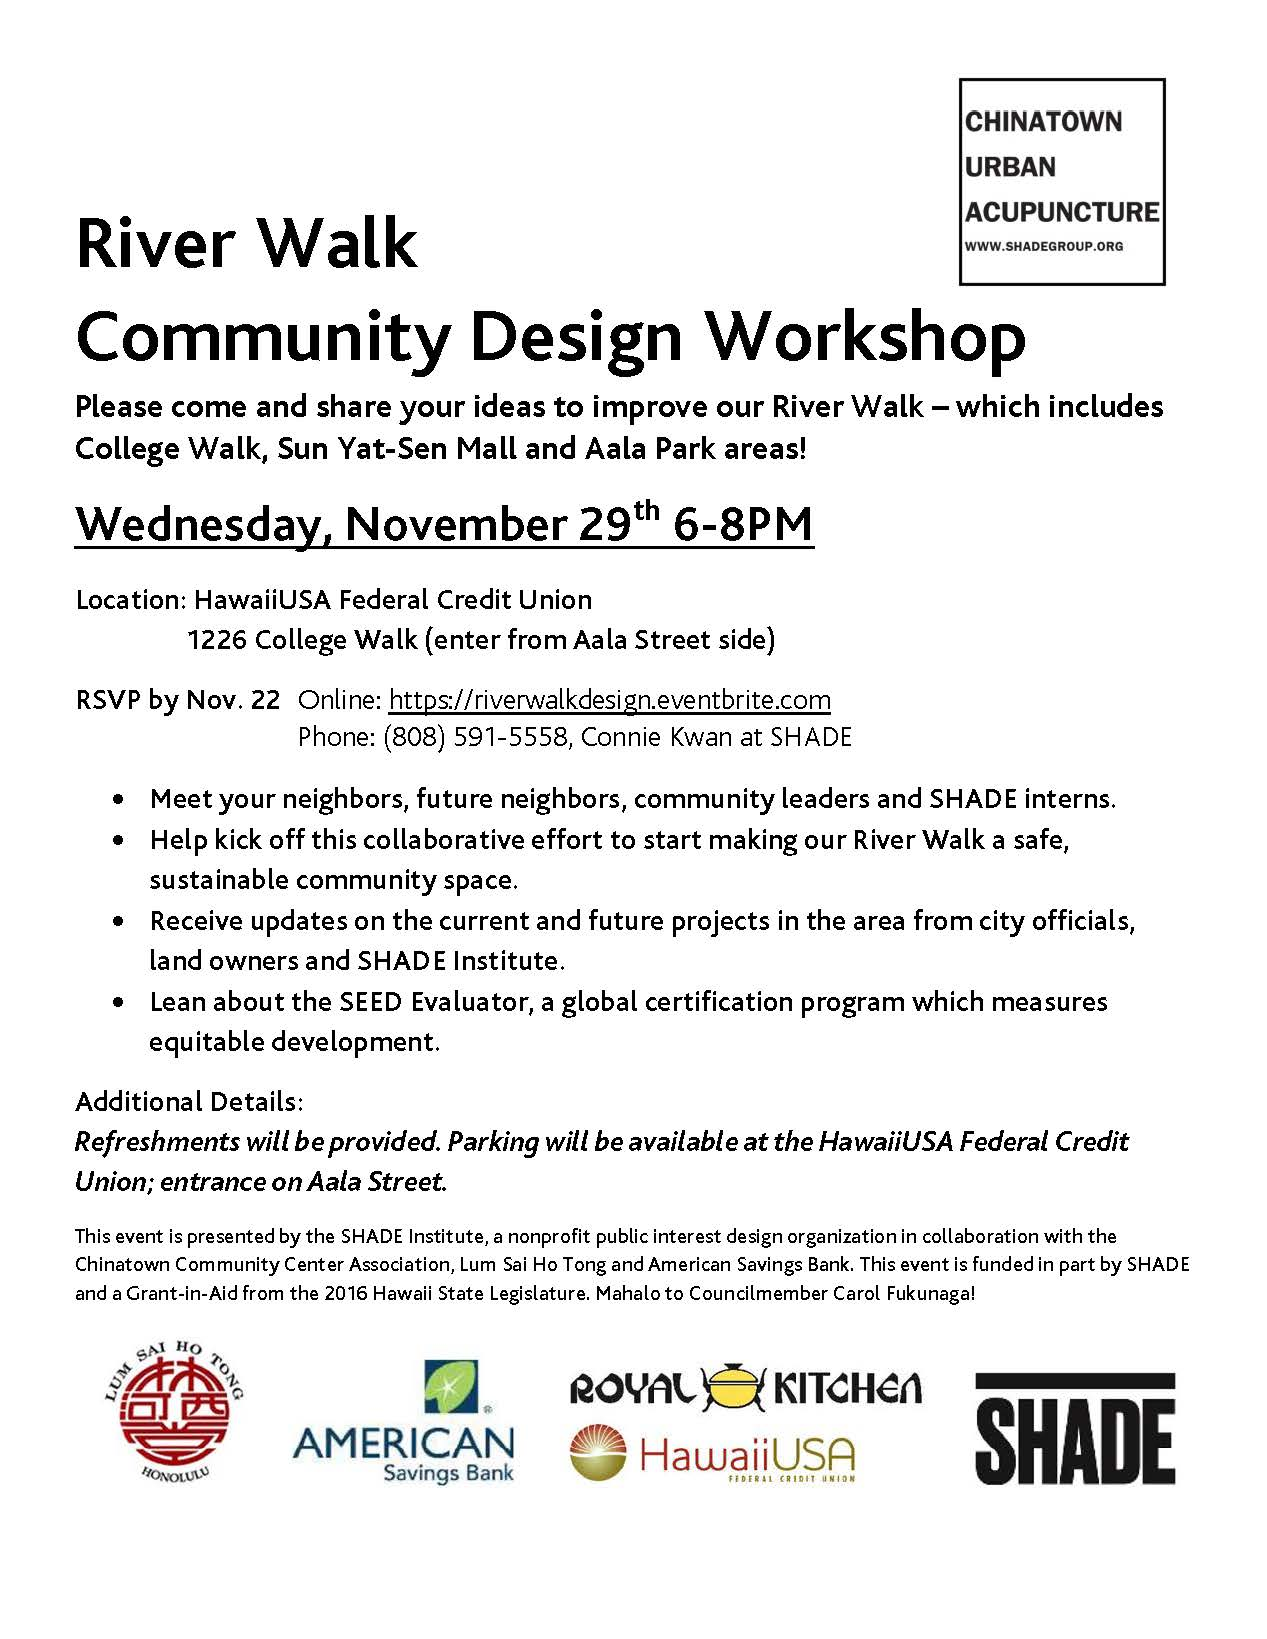 River Walk CDW Combined Flyer_171030_Page_1.jpg